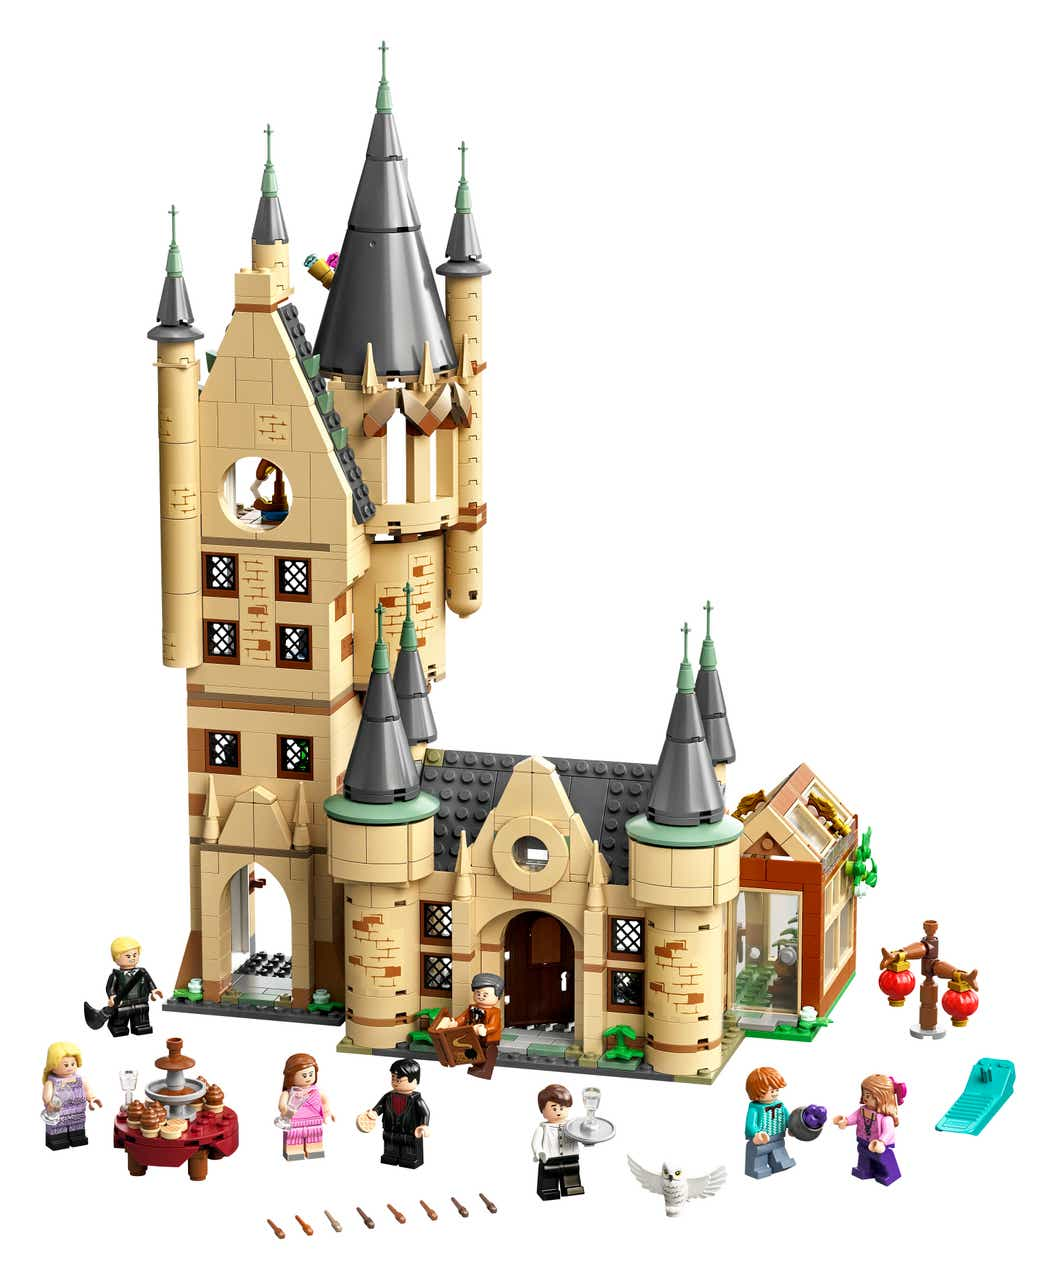 Lego Harry Potter 2hy 2020 Products About Us Lego Com Ch